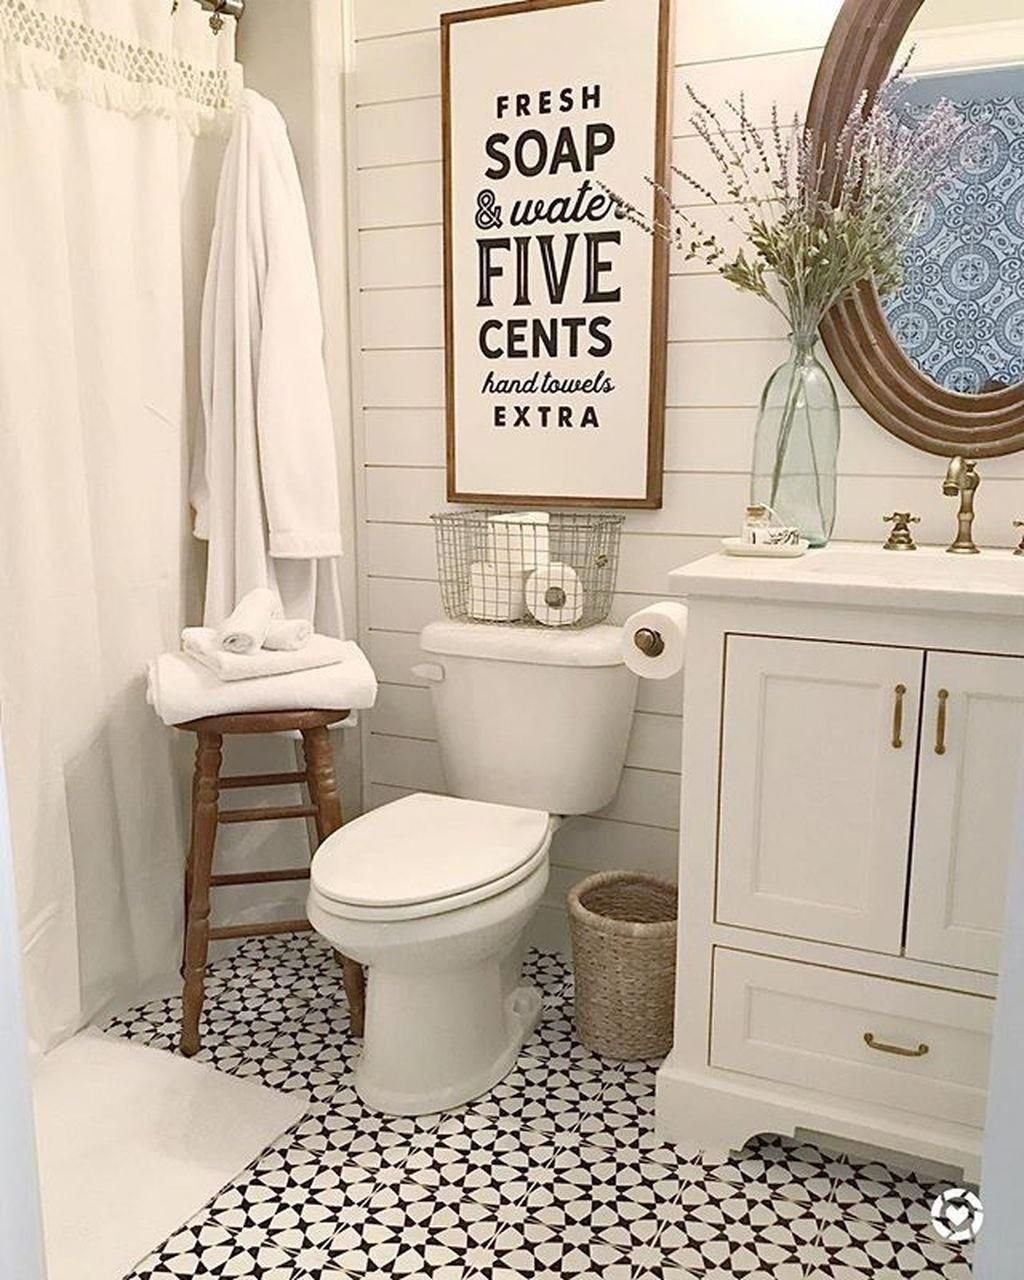 Categorymodern Home Decor Bathroom - SalePrice:47$